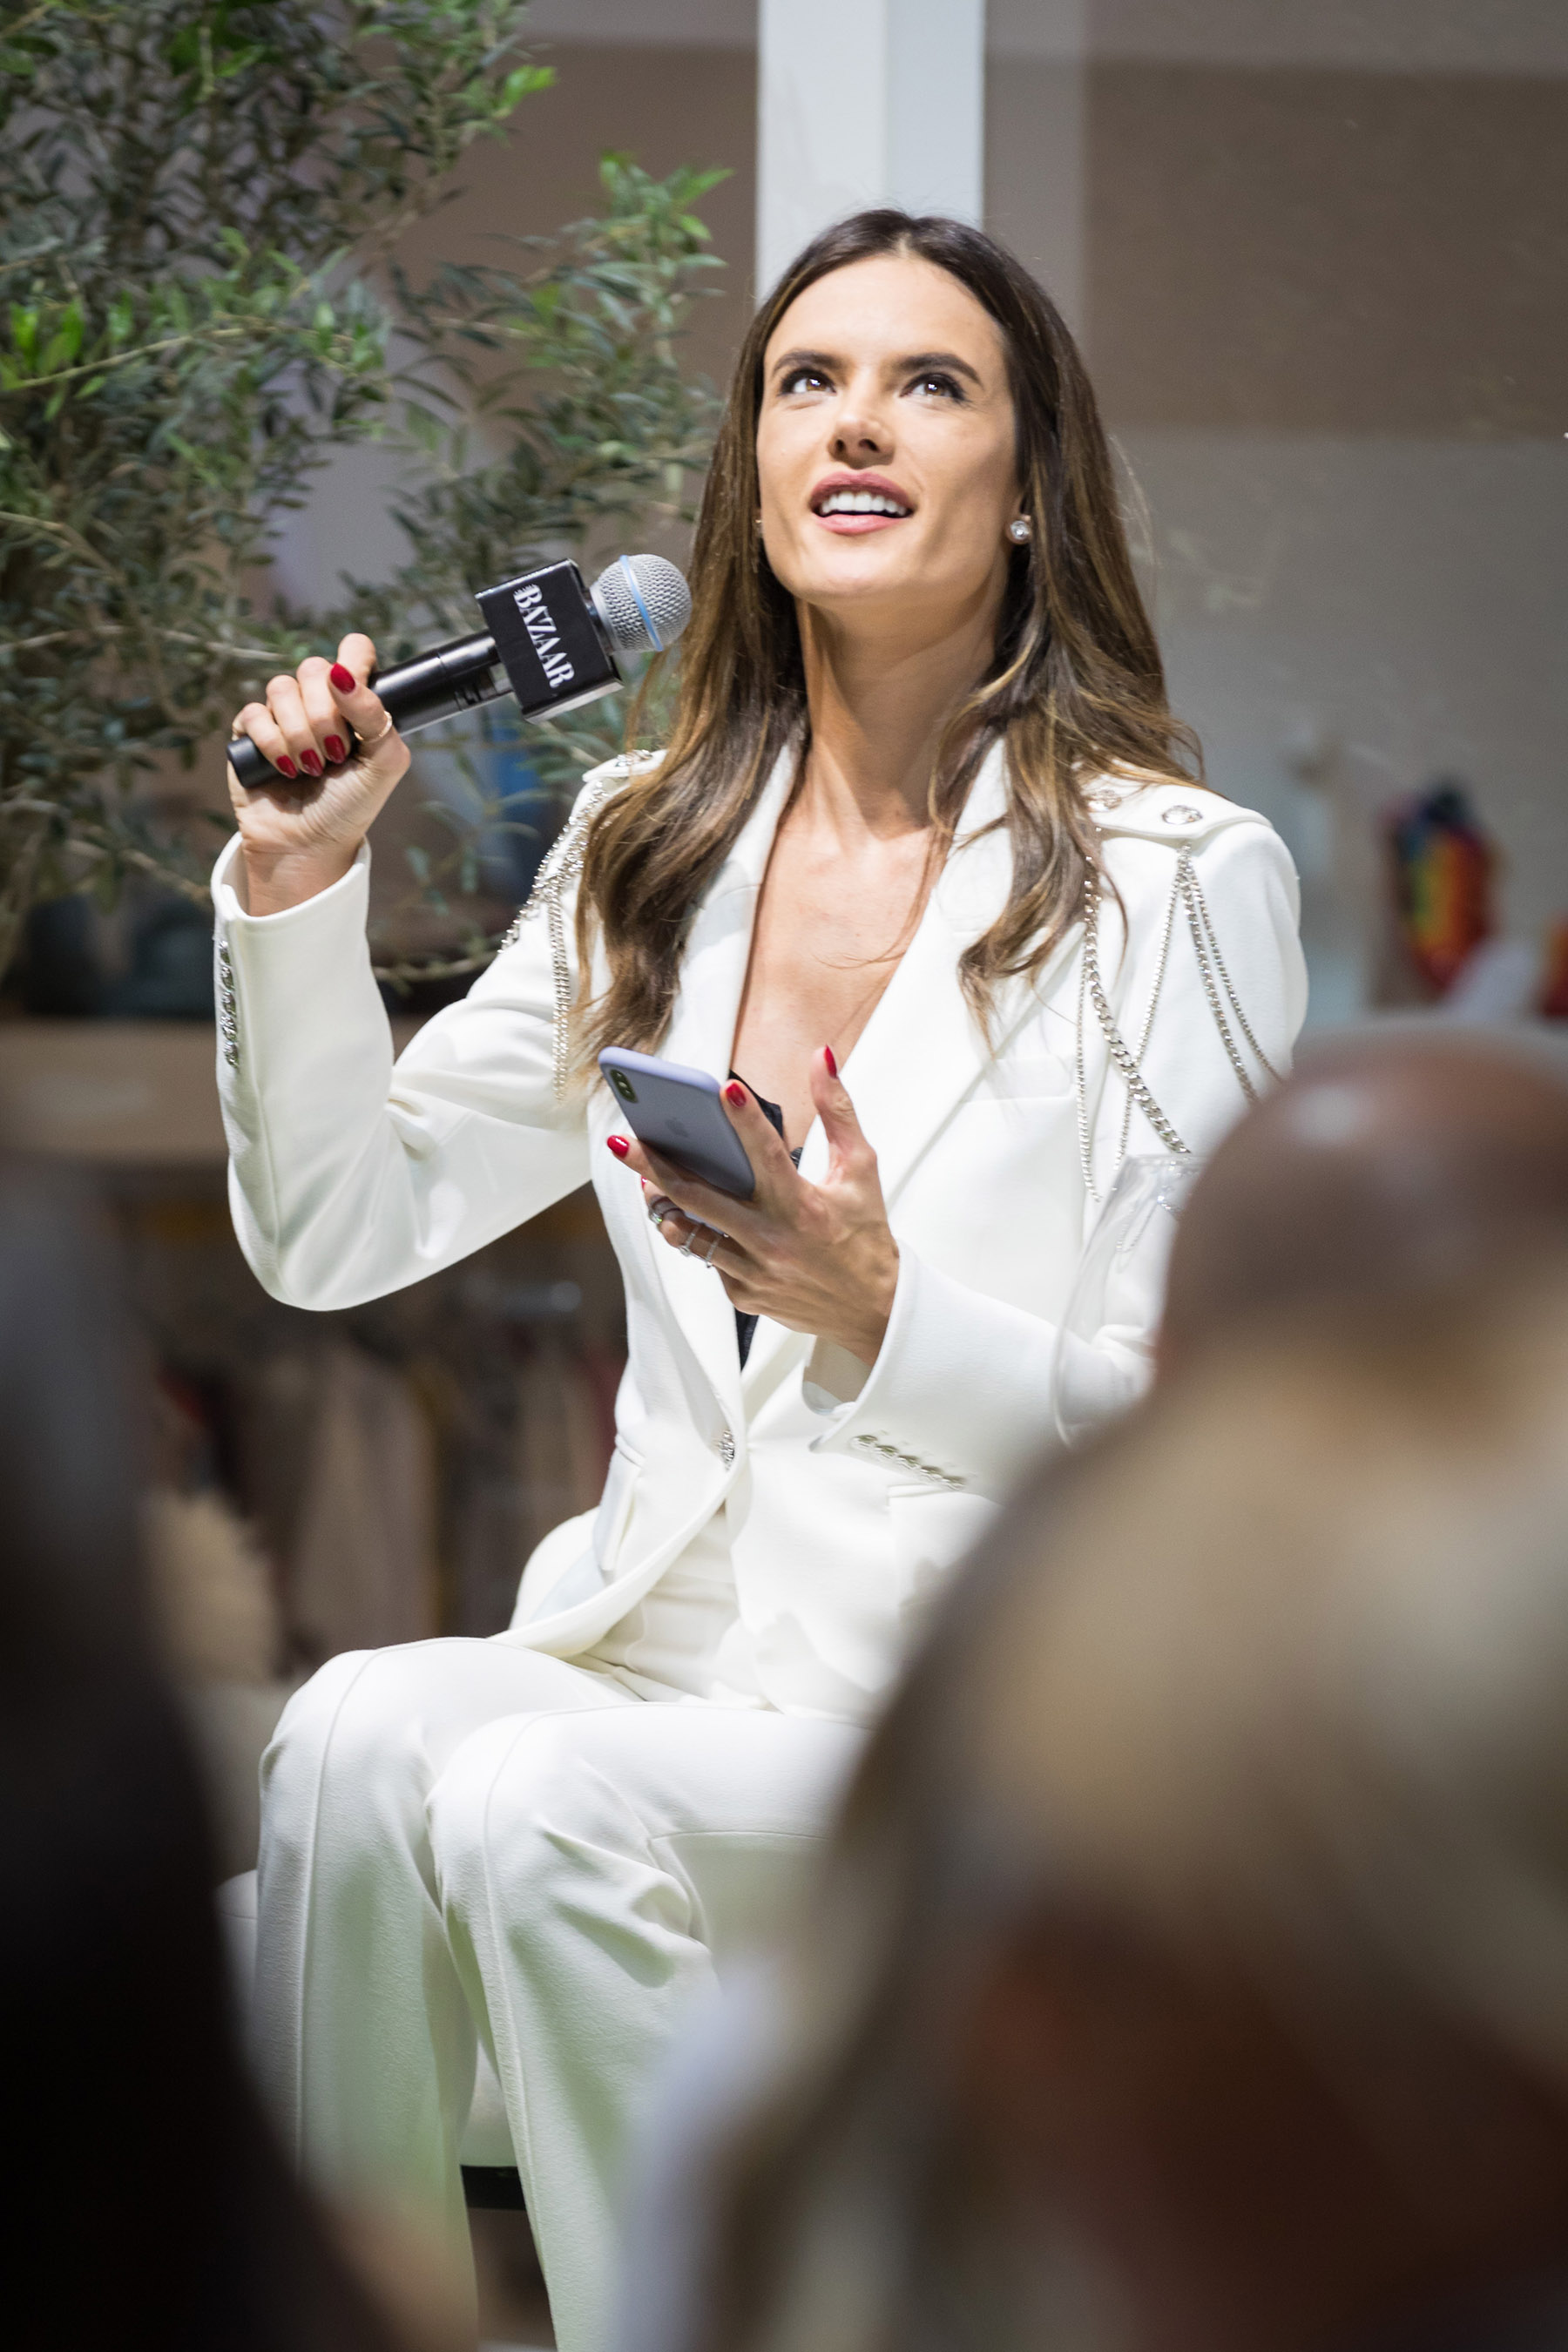 Alessandra Ambrosio at Harpers Bazaar House of Fashion by Loesje Kessels Event Photographer Dubai